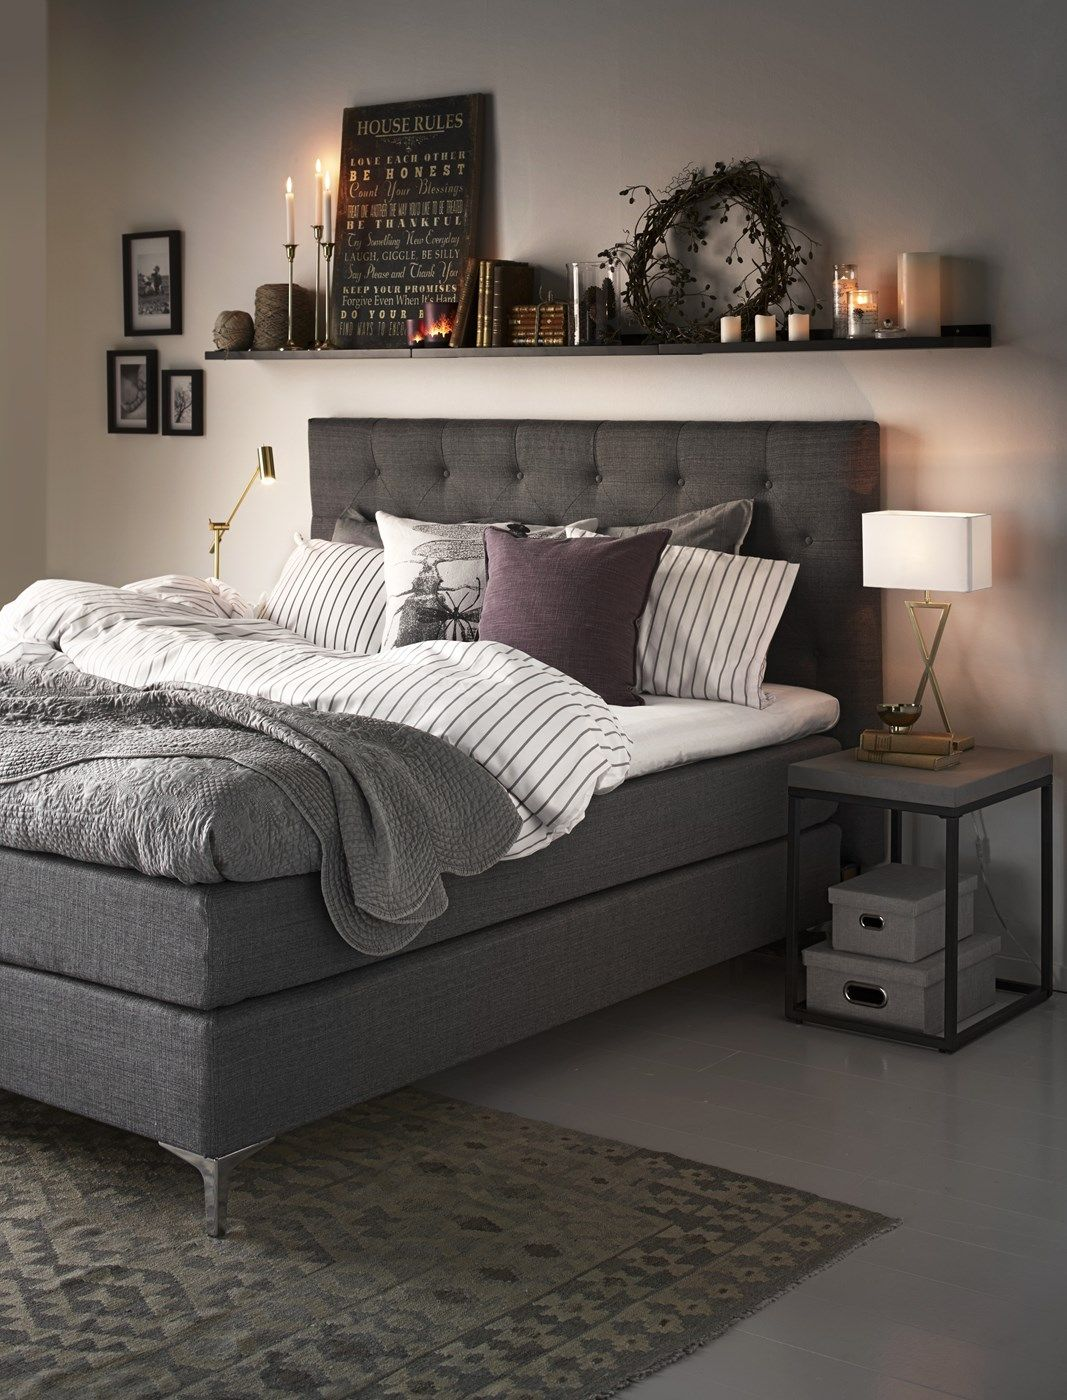 mio kontinentals ng relax home schlafzimmer schlafzimmer ideen och schlafzimmer deko. Black Bedroom Furniture Sets. Home Design Ideas